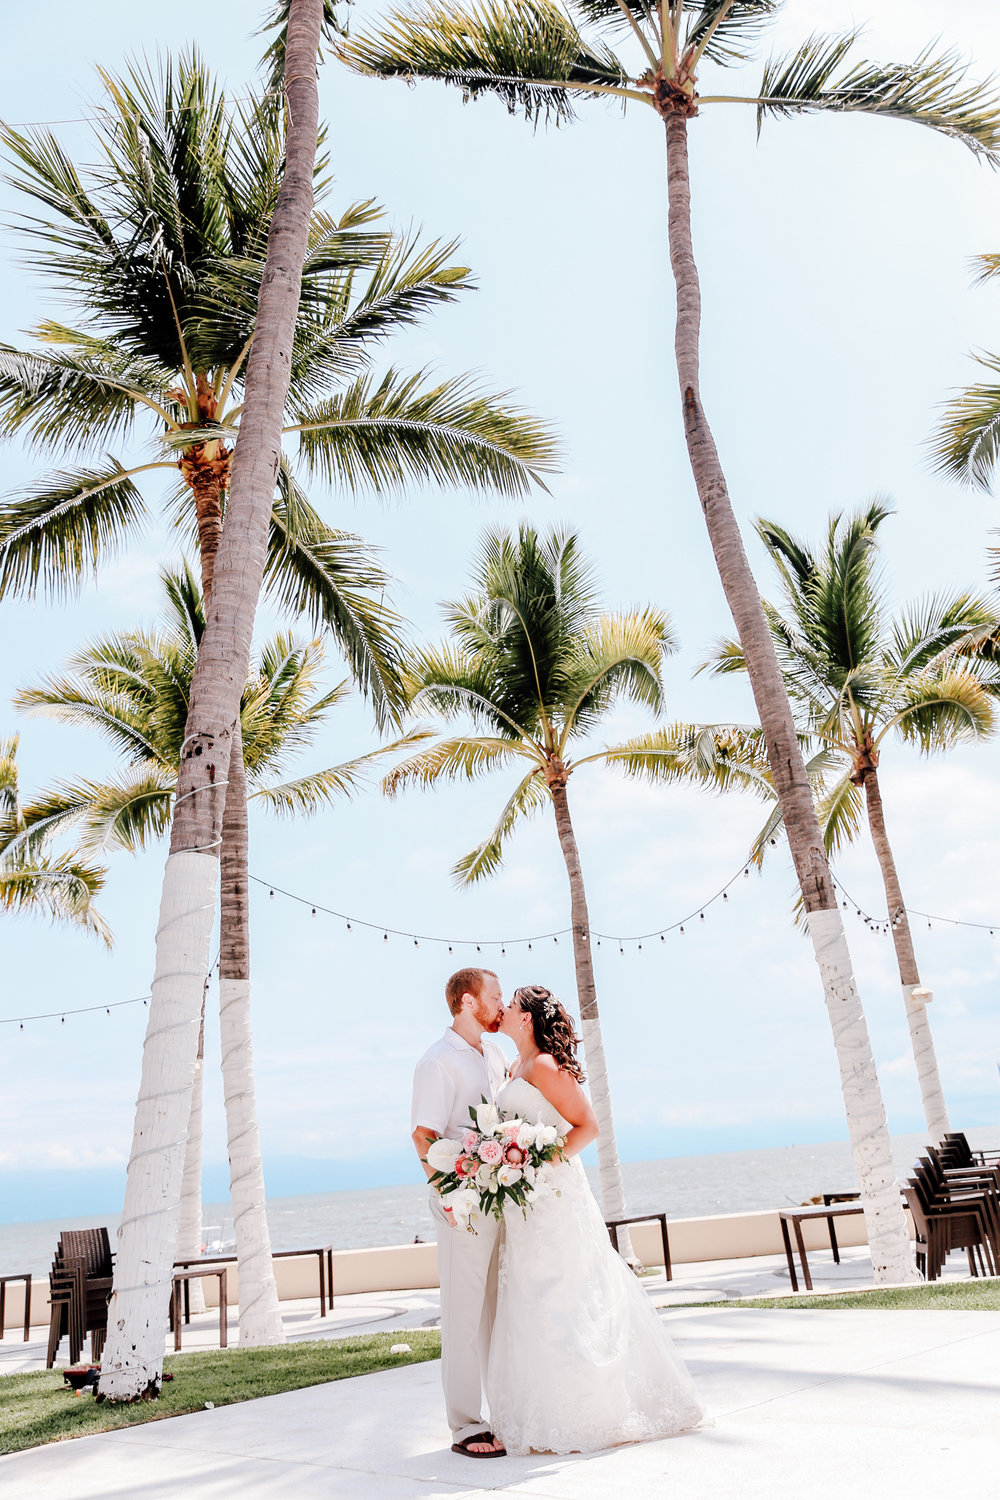 Tiffany and Ryan - Puerto Vallarta Wedding Photographer - 66.jpg